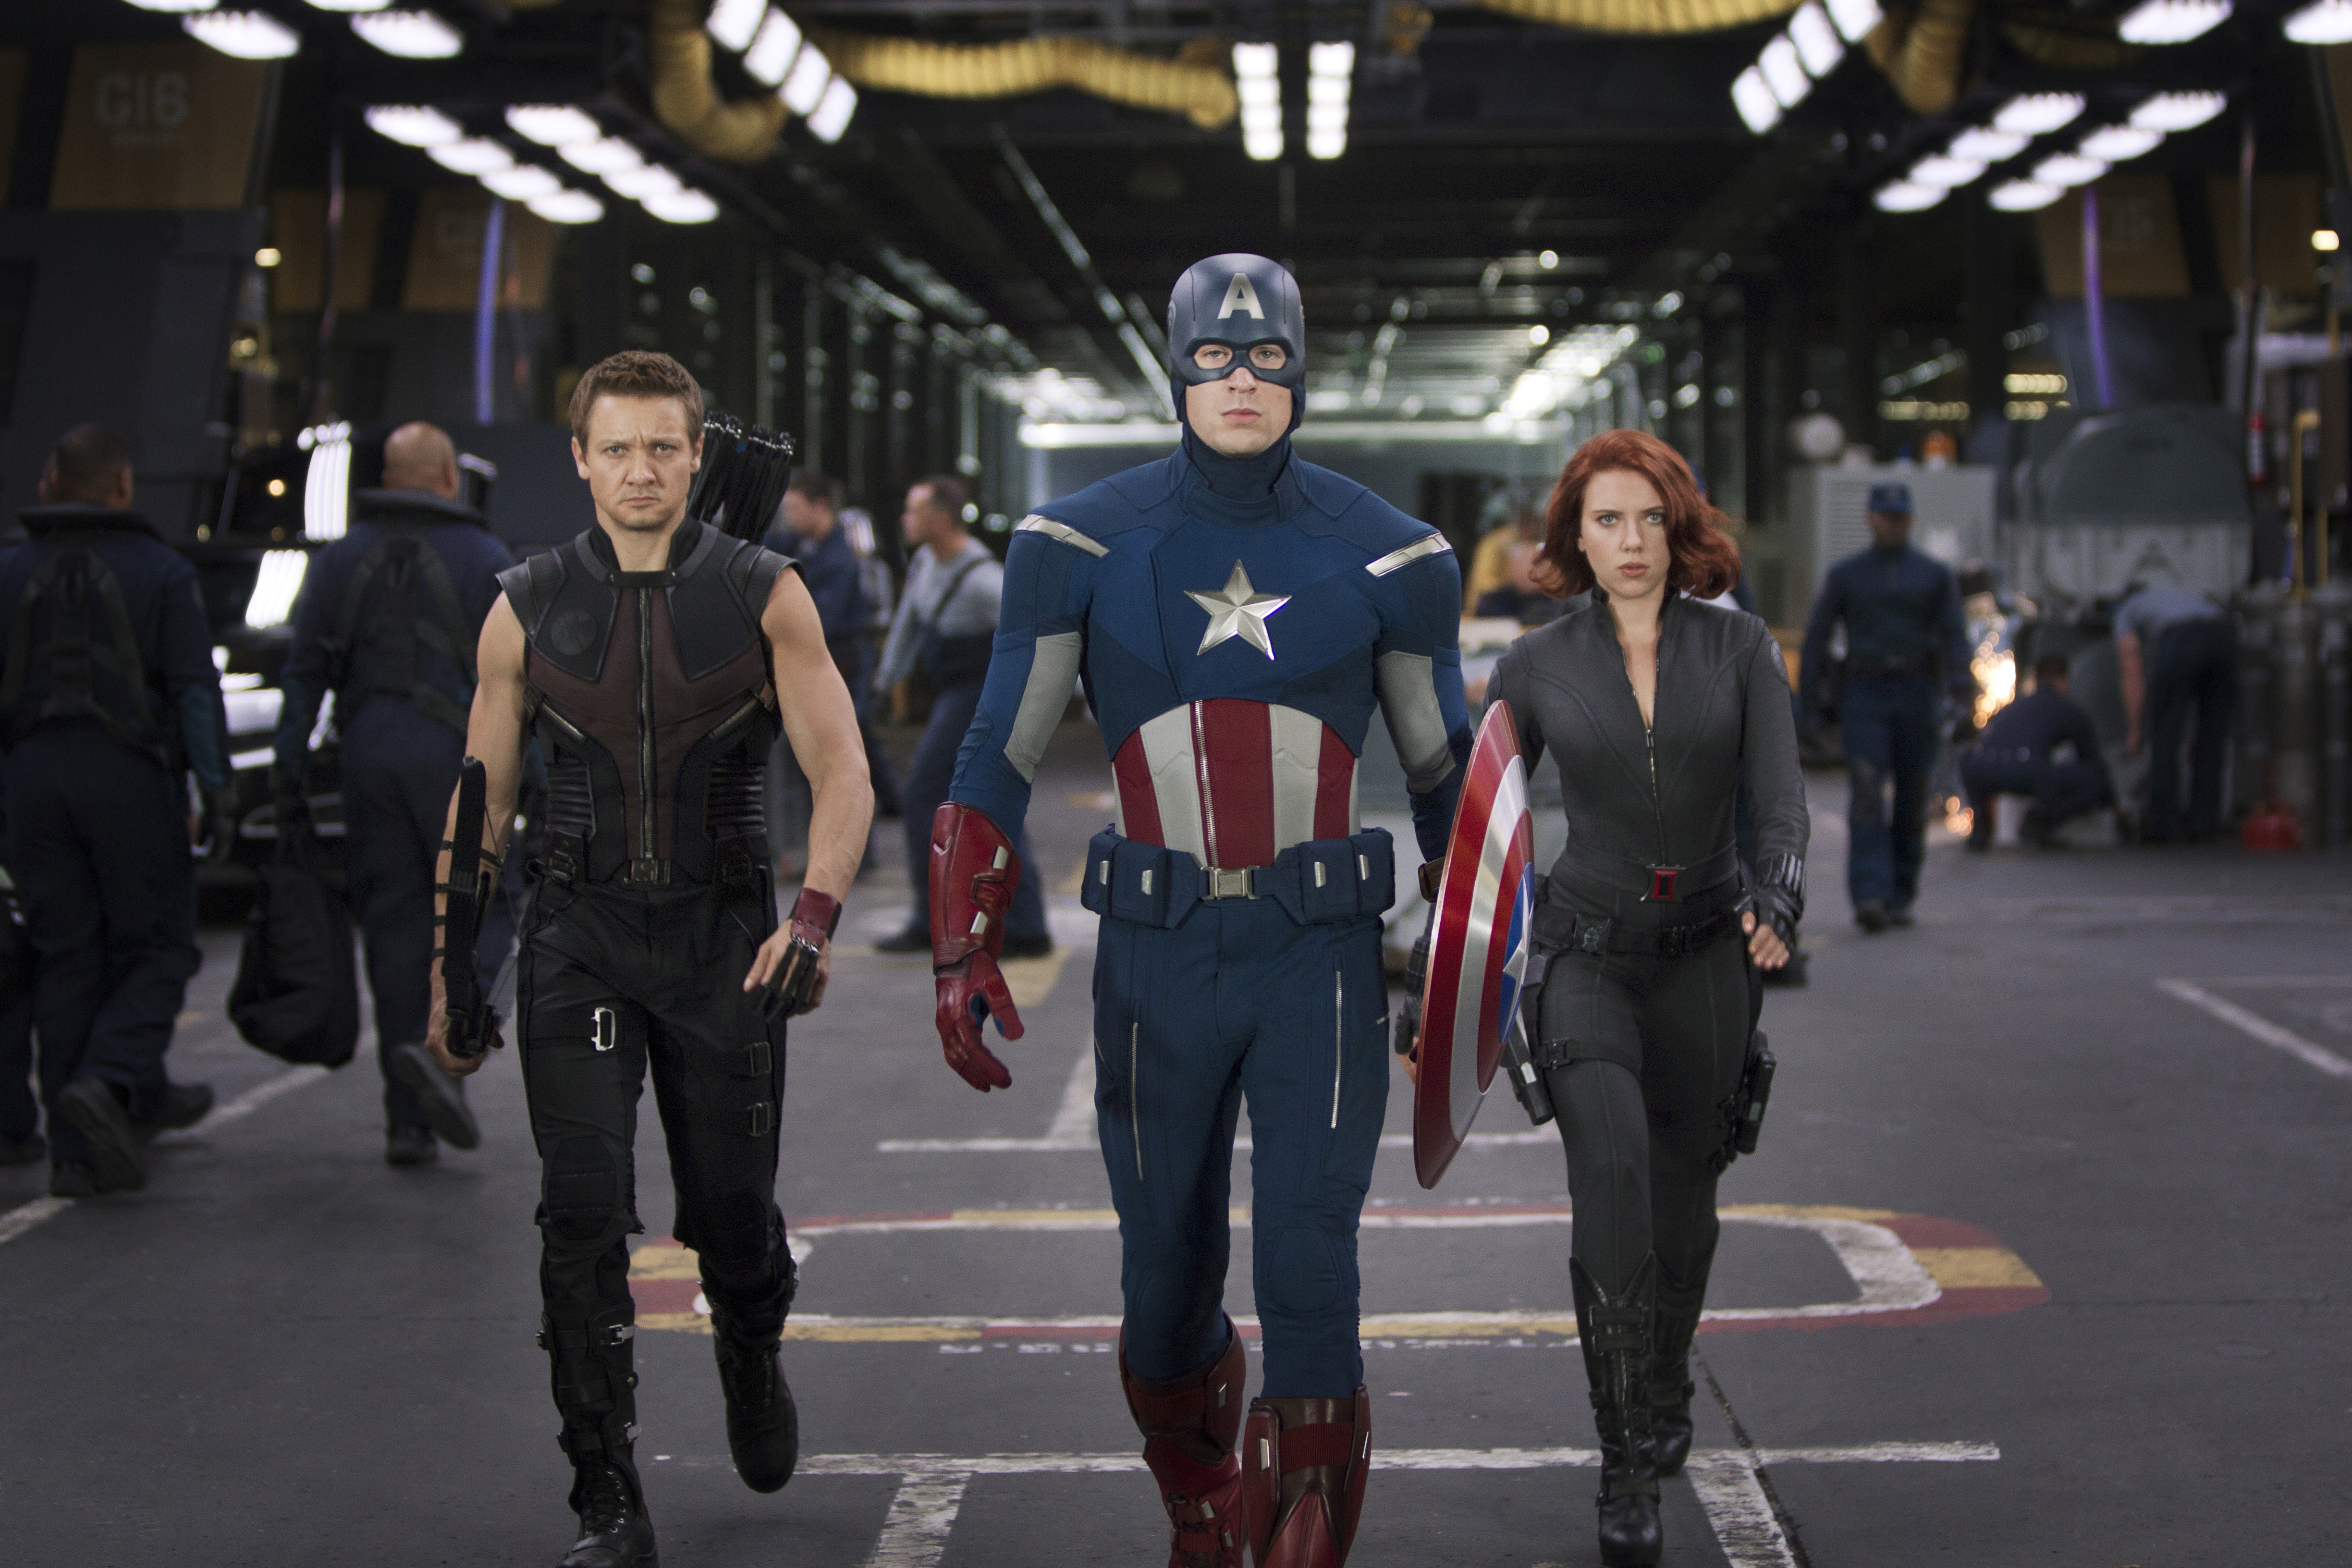 Jeremy Renner, Chris Evans, and Scarlett Johansson in The Avengers.